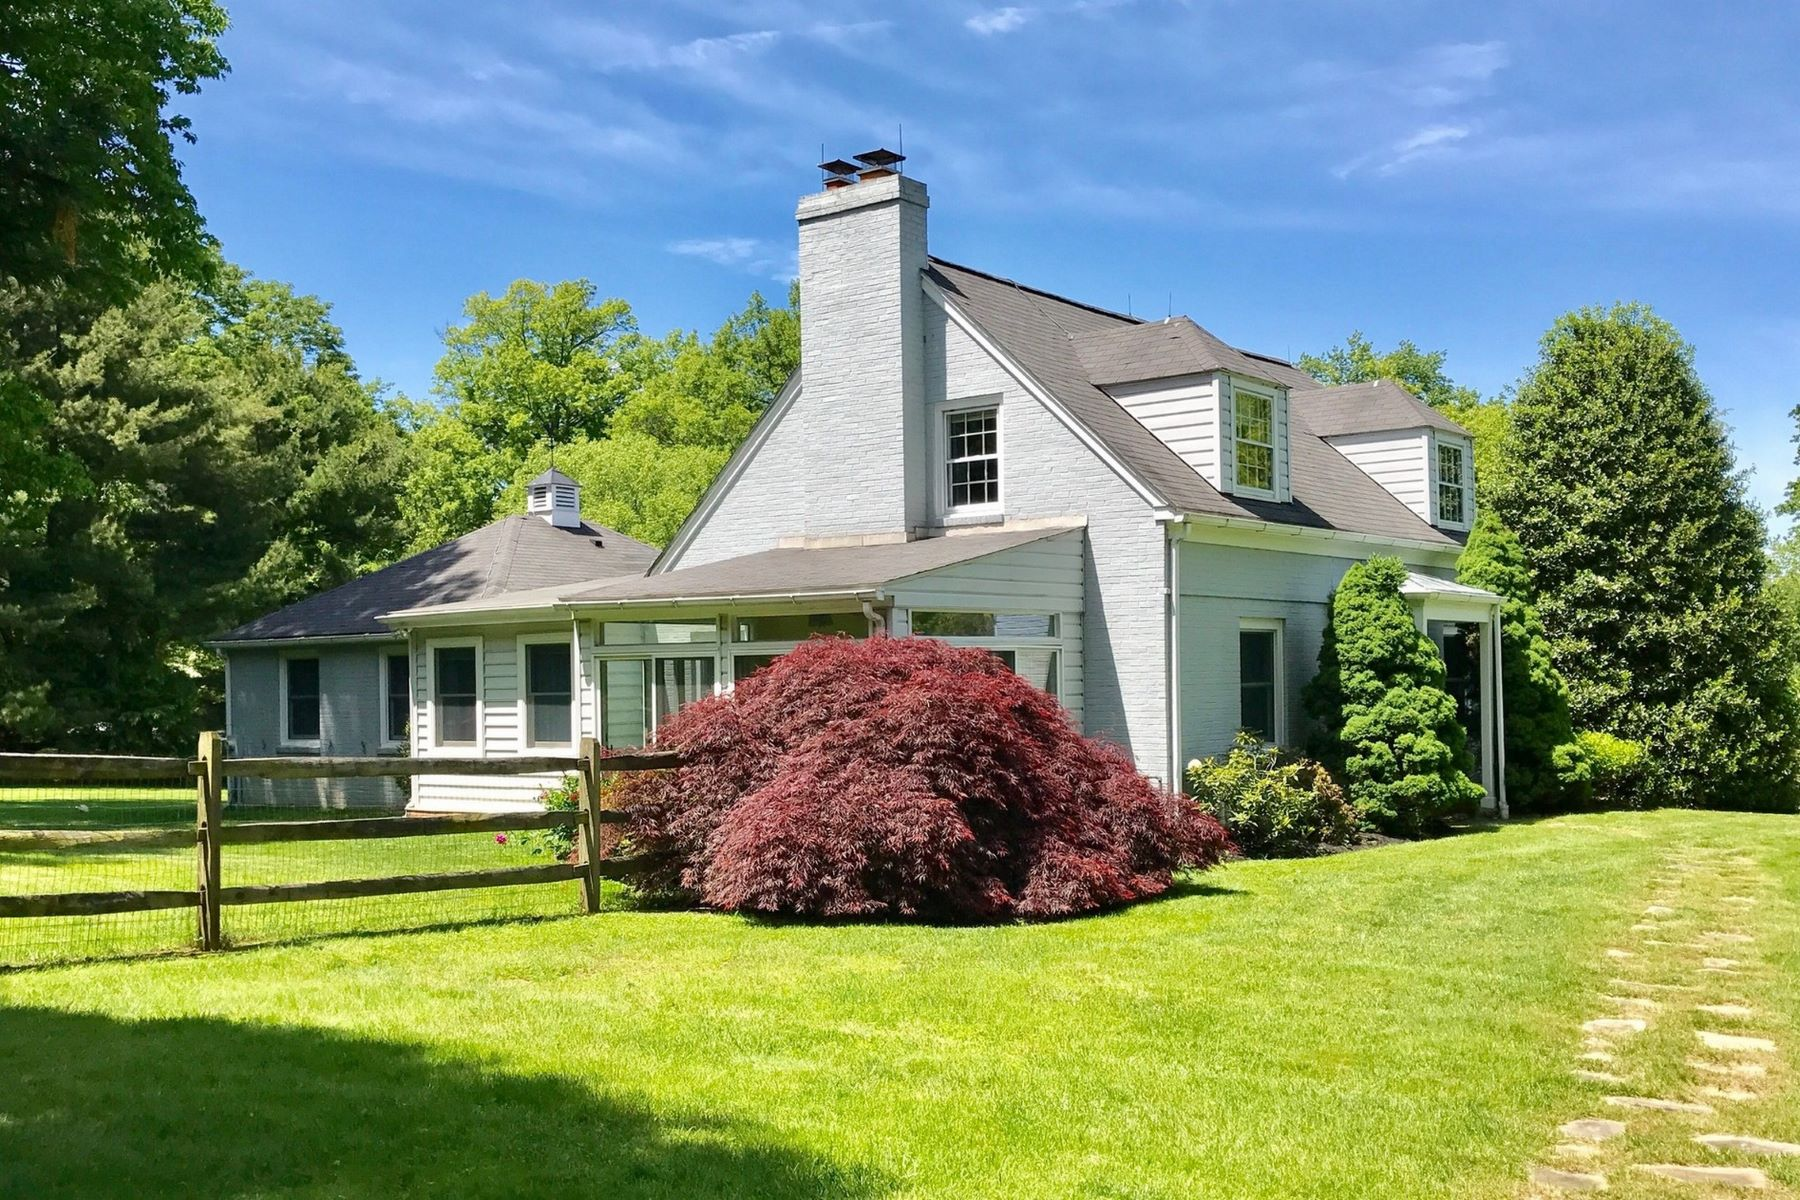 Single Family Home for Sale at 101 Brook Valley Rd., Greenville, DE 19807 Greenville, Delaware, 19807 United States